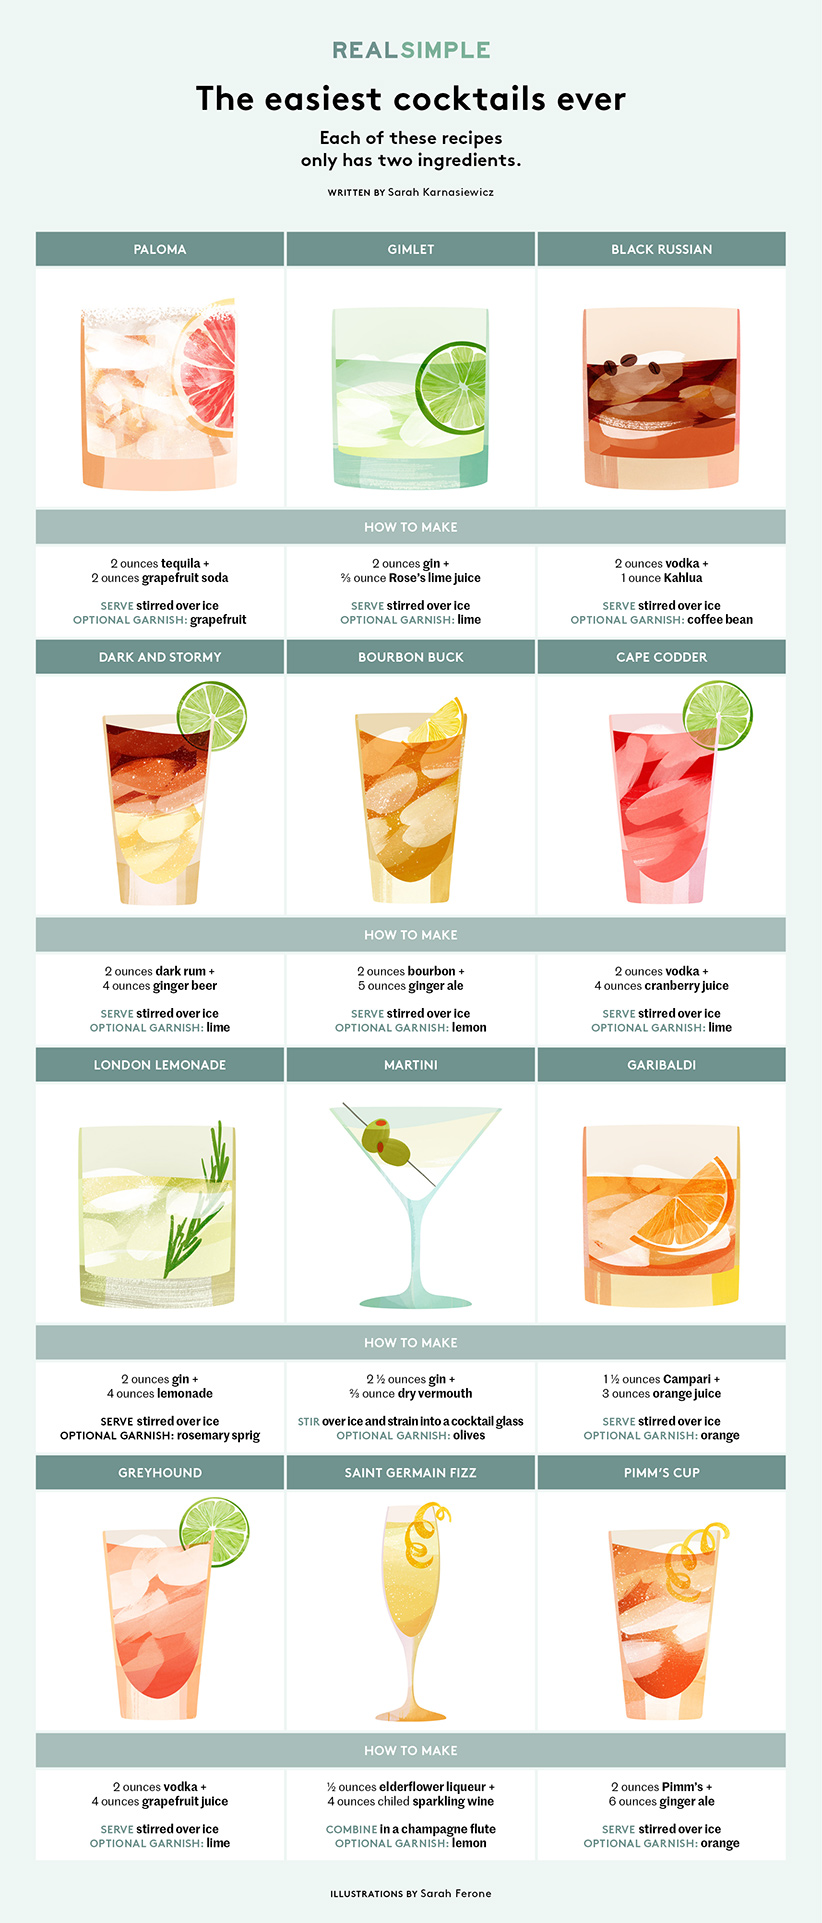 12 Easy Cocktails With Just 2 Ingredients